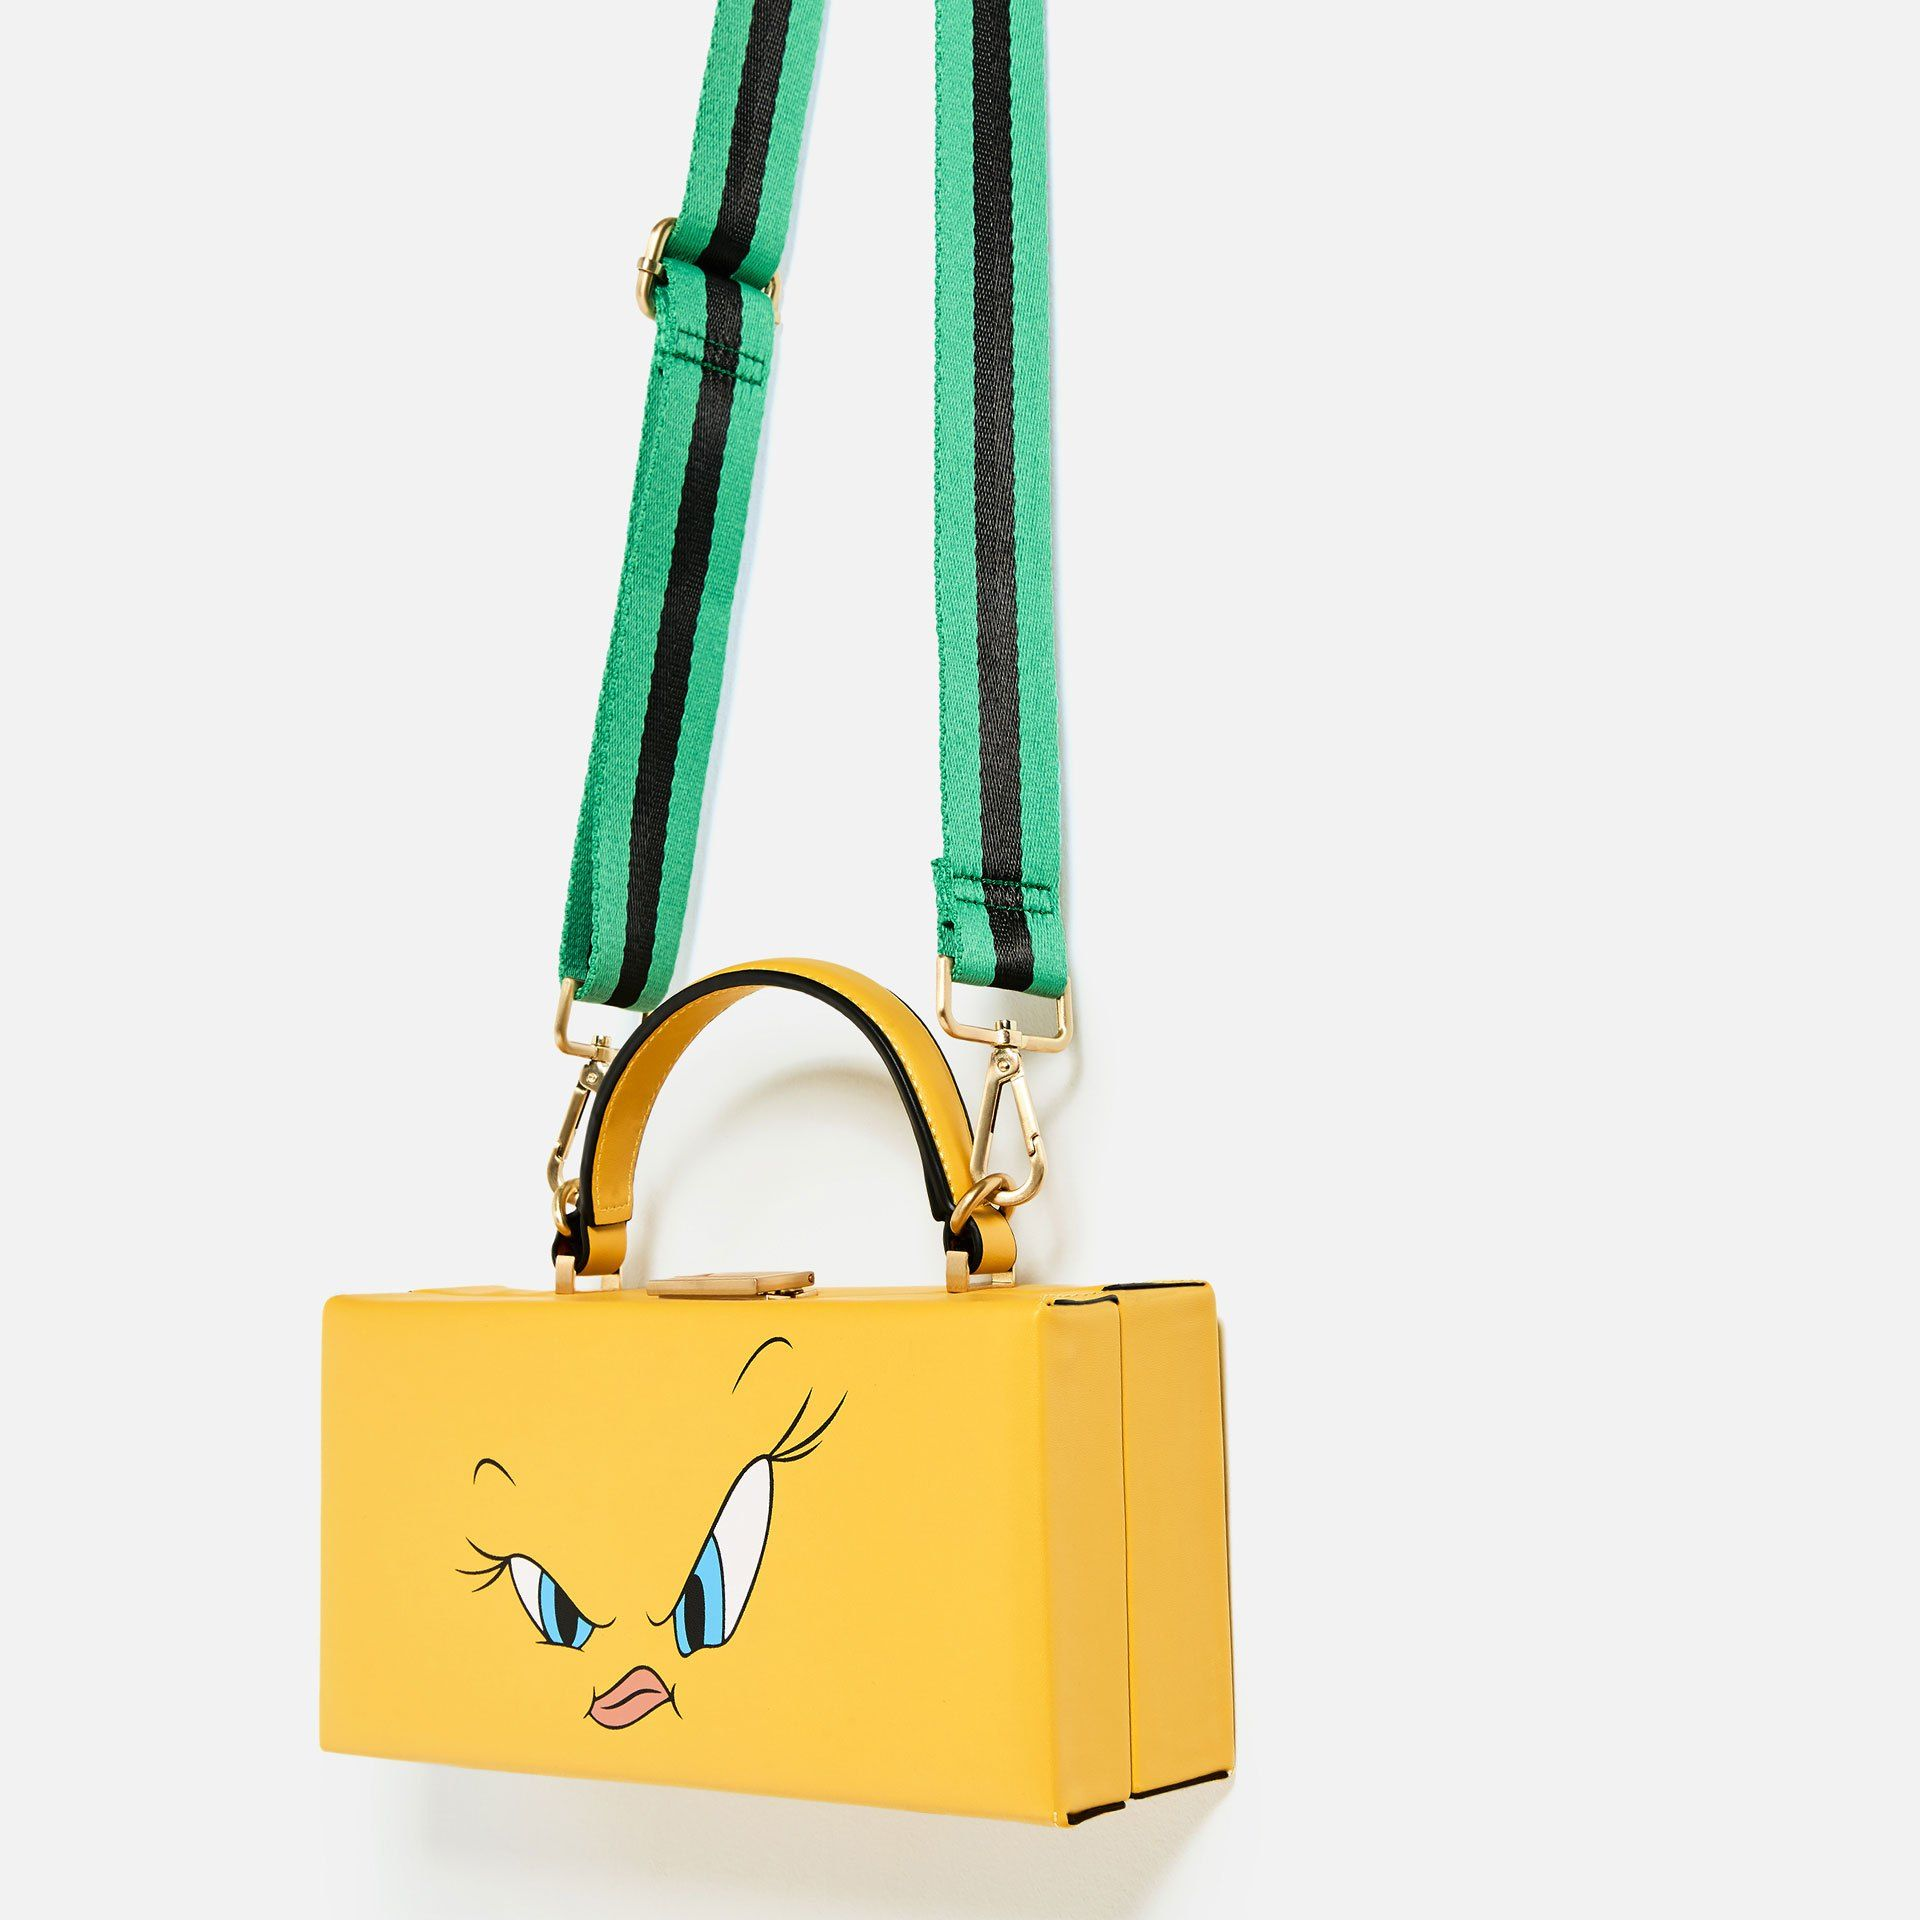 Best bags you can find right now at the cheapest prices!